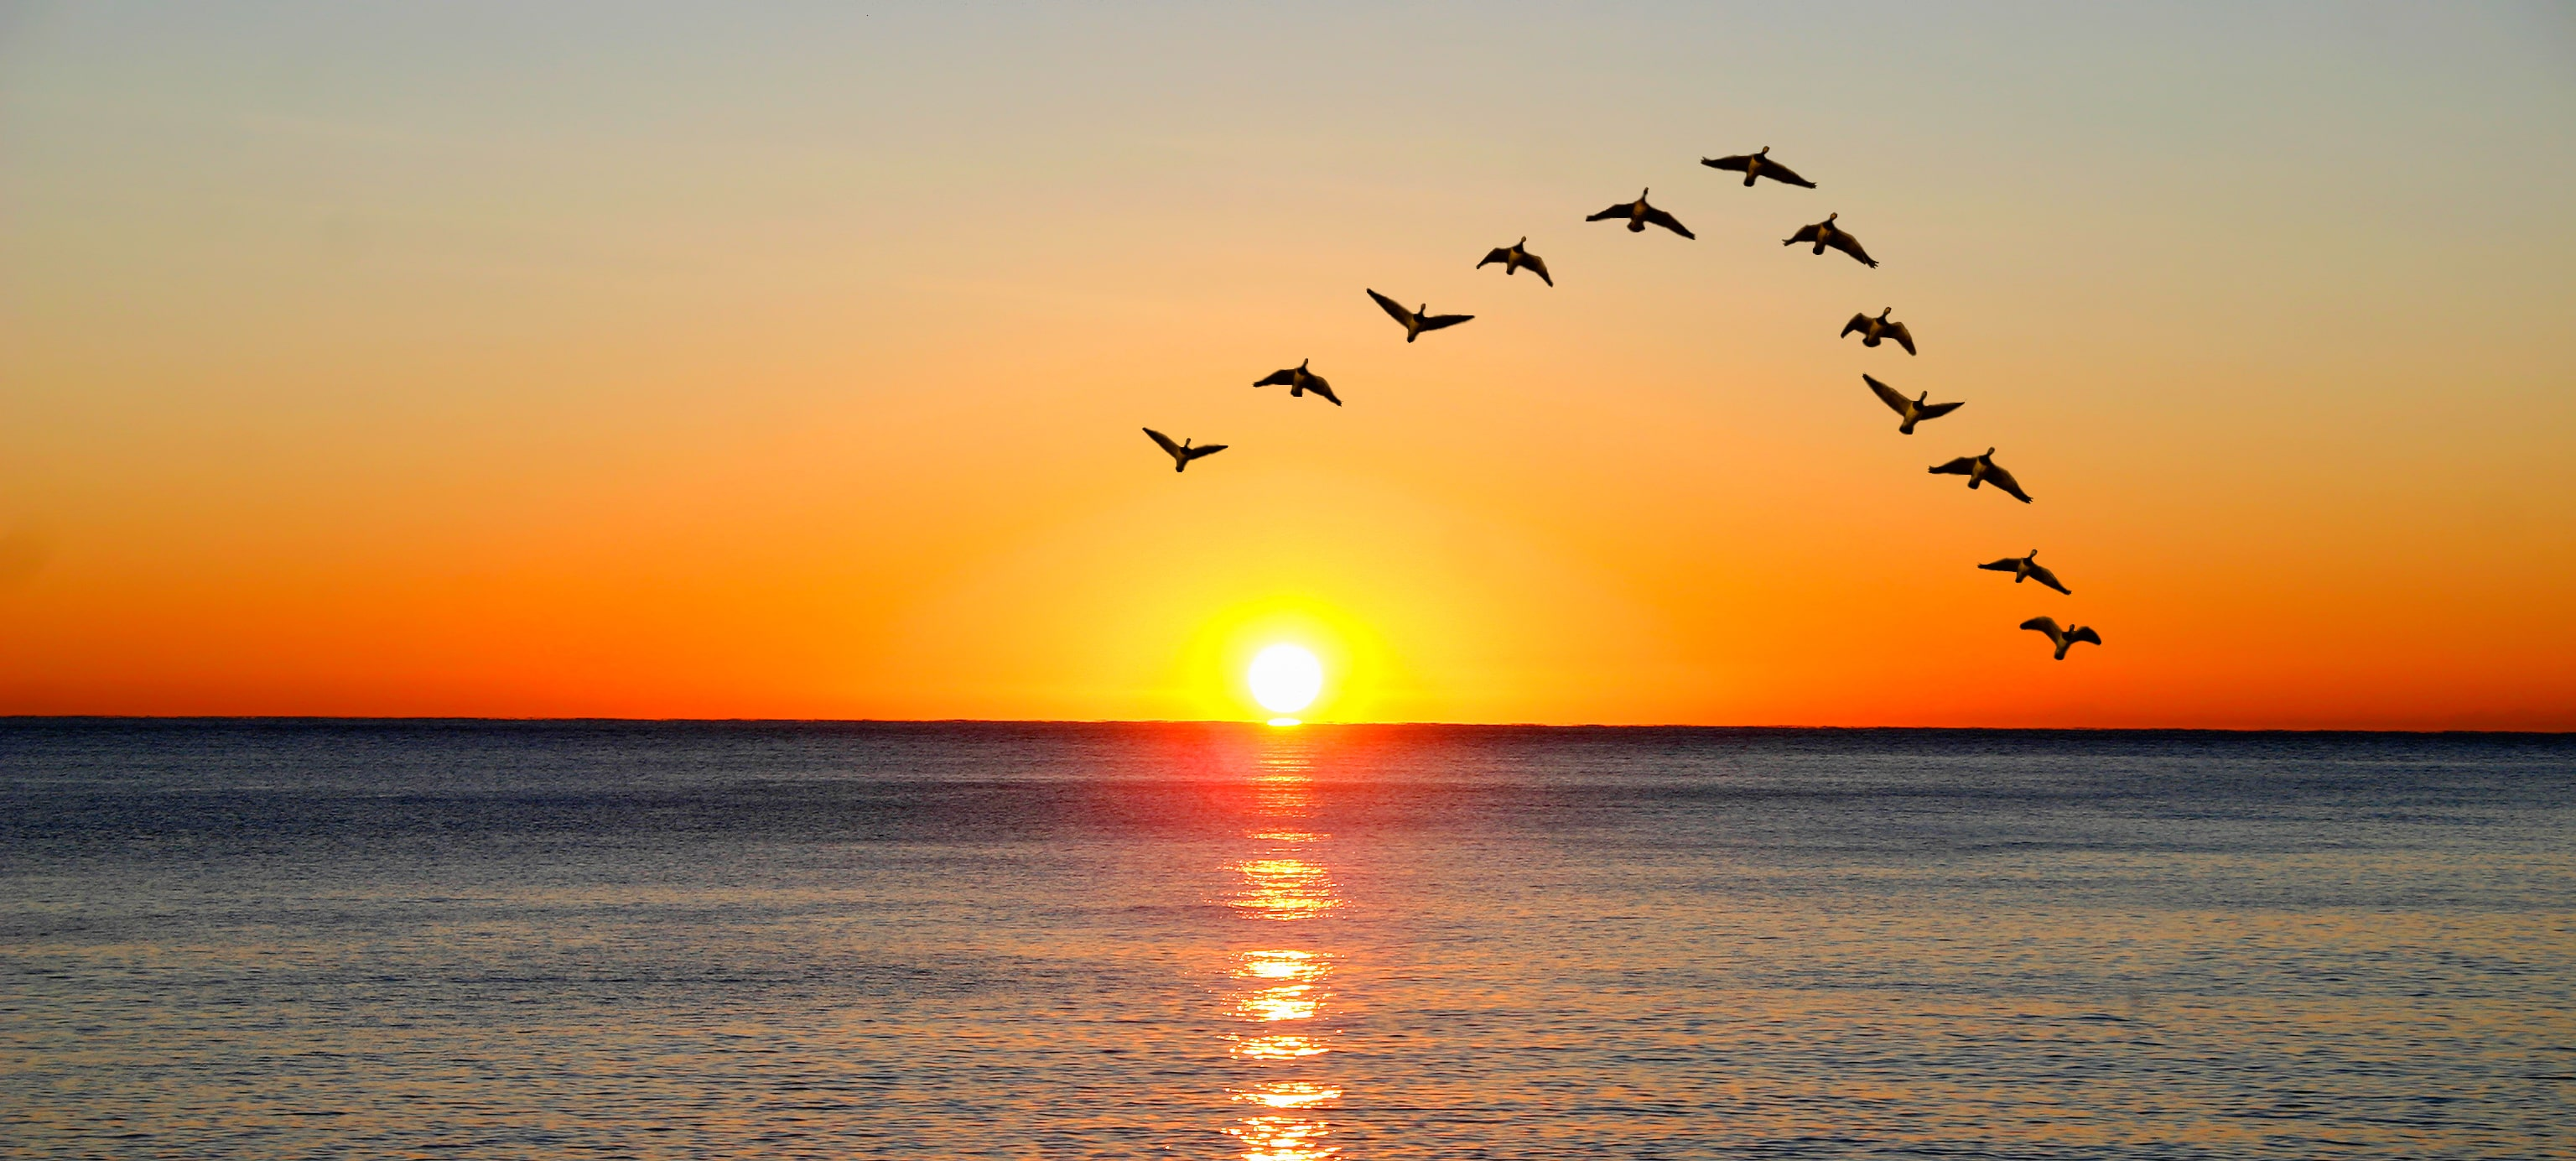 Red/yellow sun above seaside with birds flying in V formation